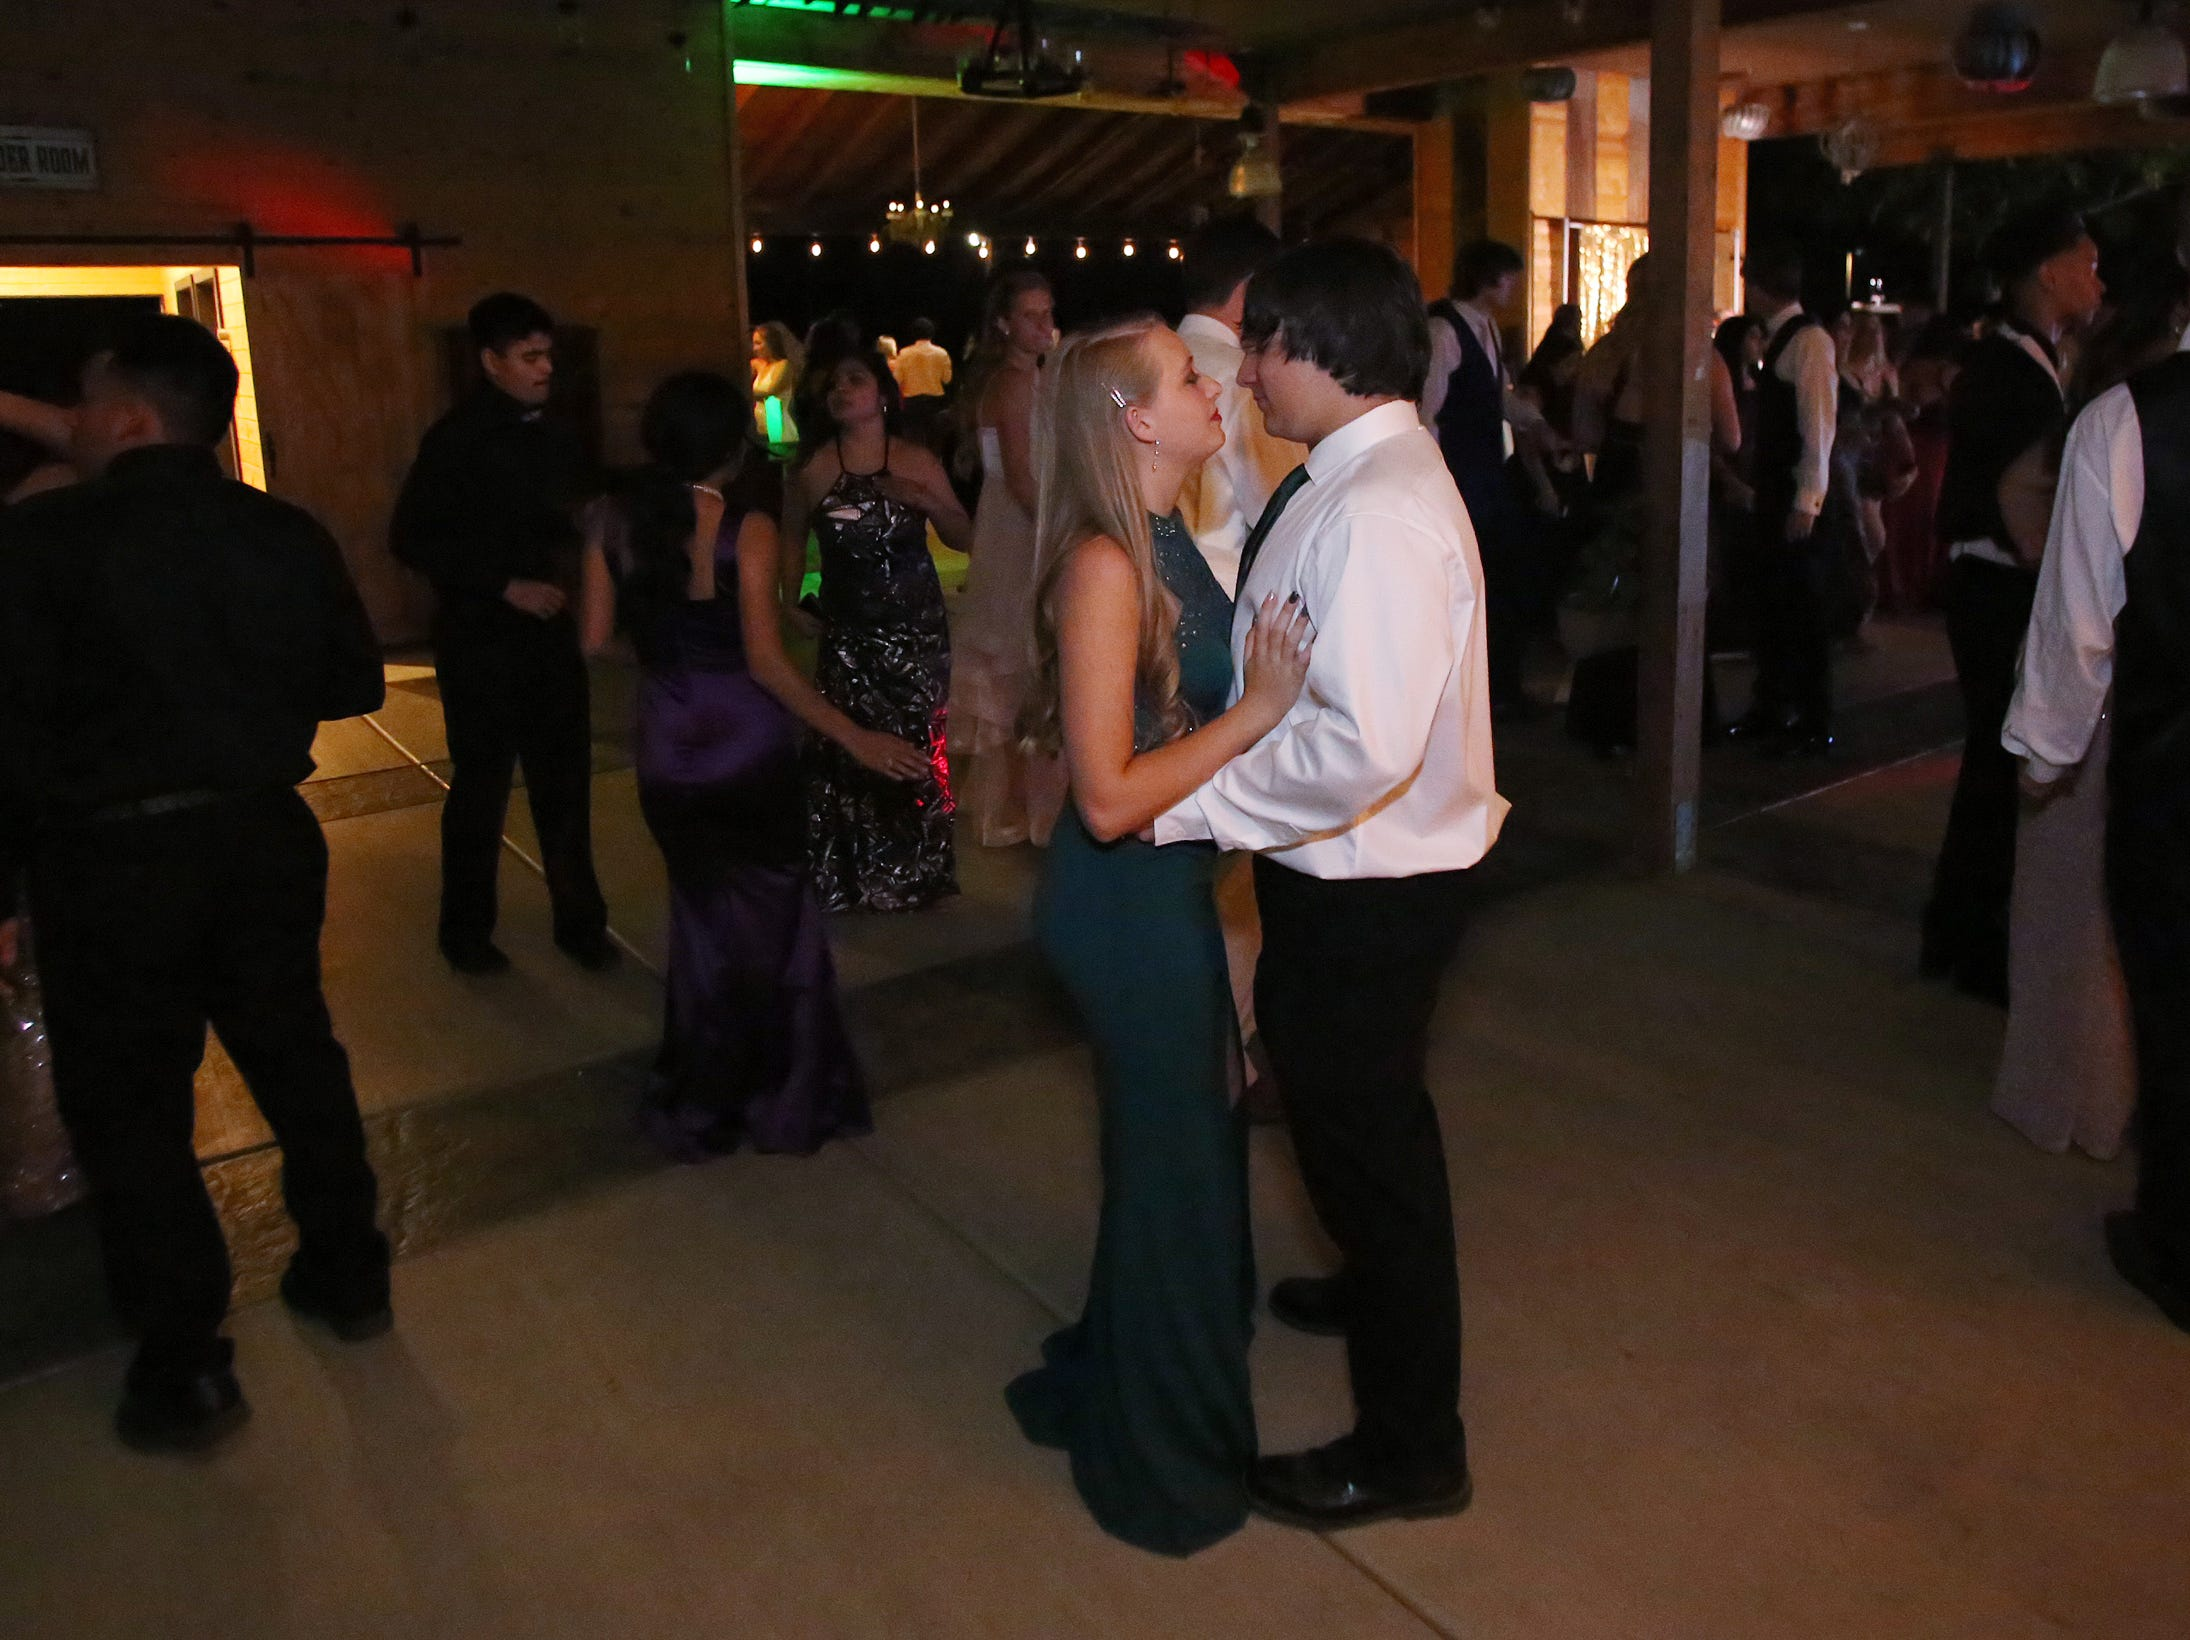 Tyler Fredrickson and Cassie Whitney enjoy a slow dance at the Exeter Union High School prom Saturday, May 4, 2019 in Woodlake, Calif.